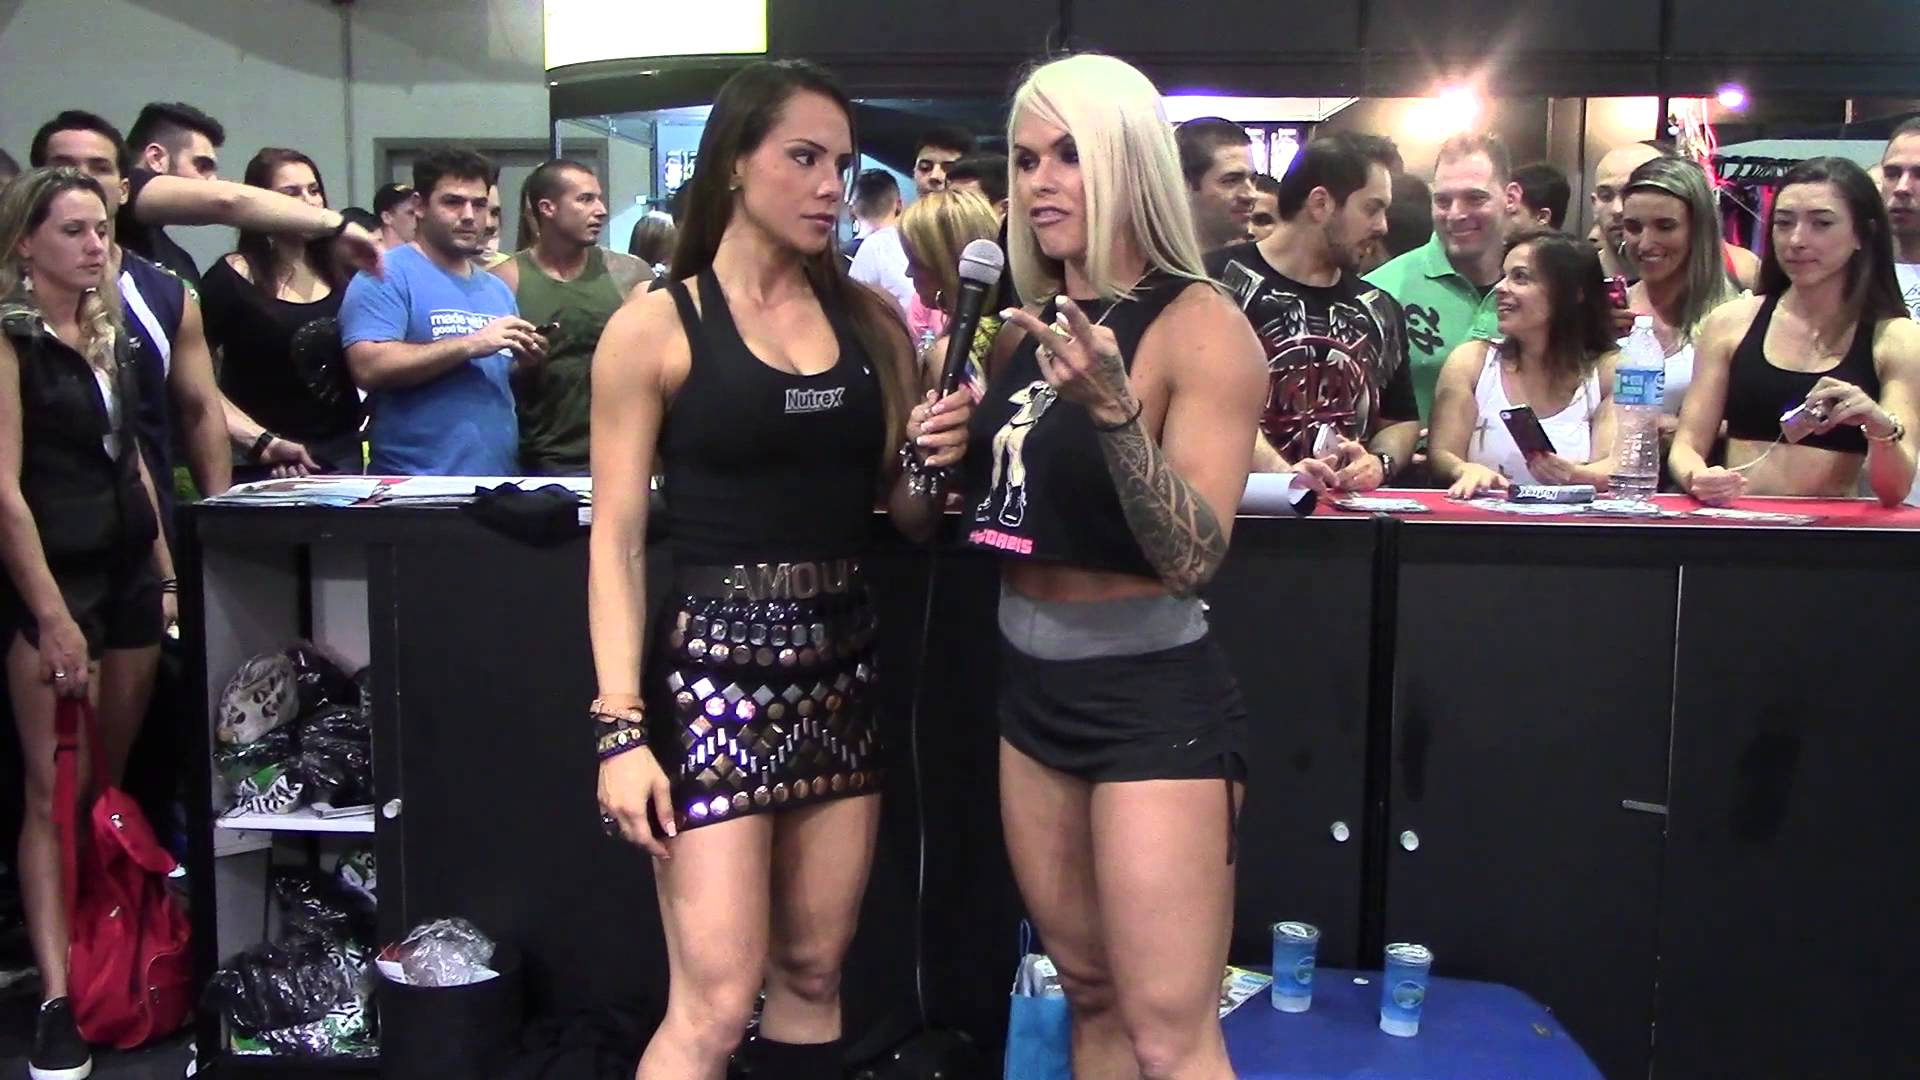 Larissa Reis At The Arnold Classic Brazil 2013 Expo